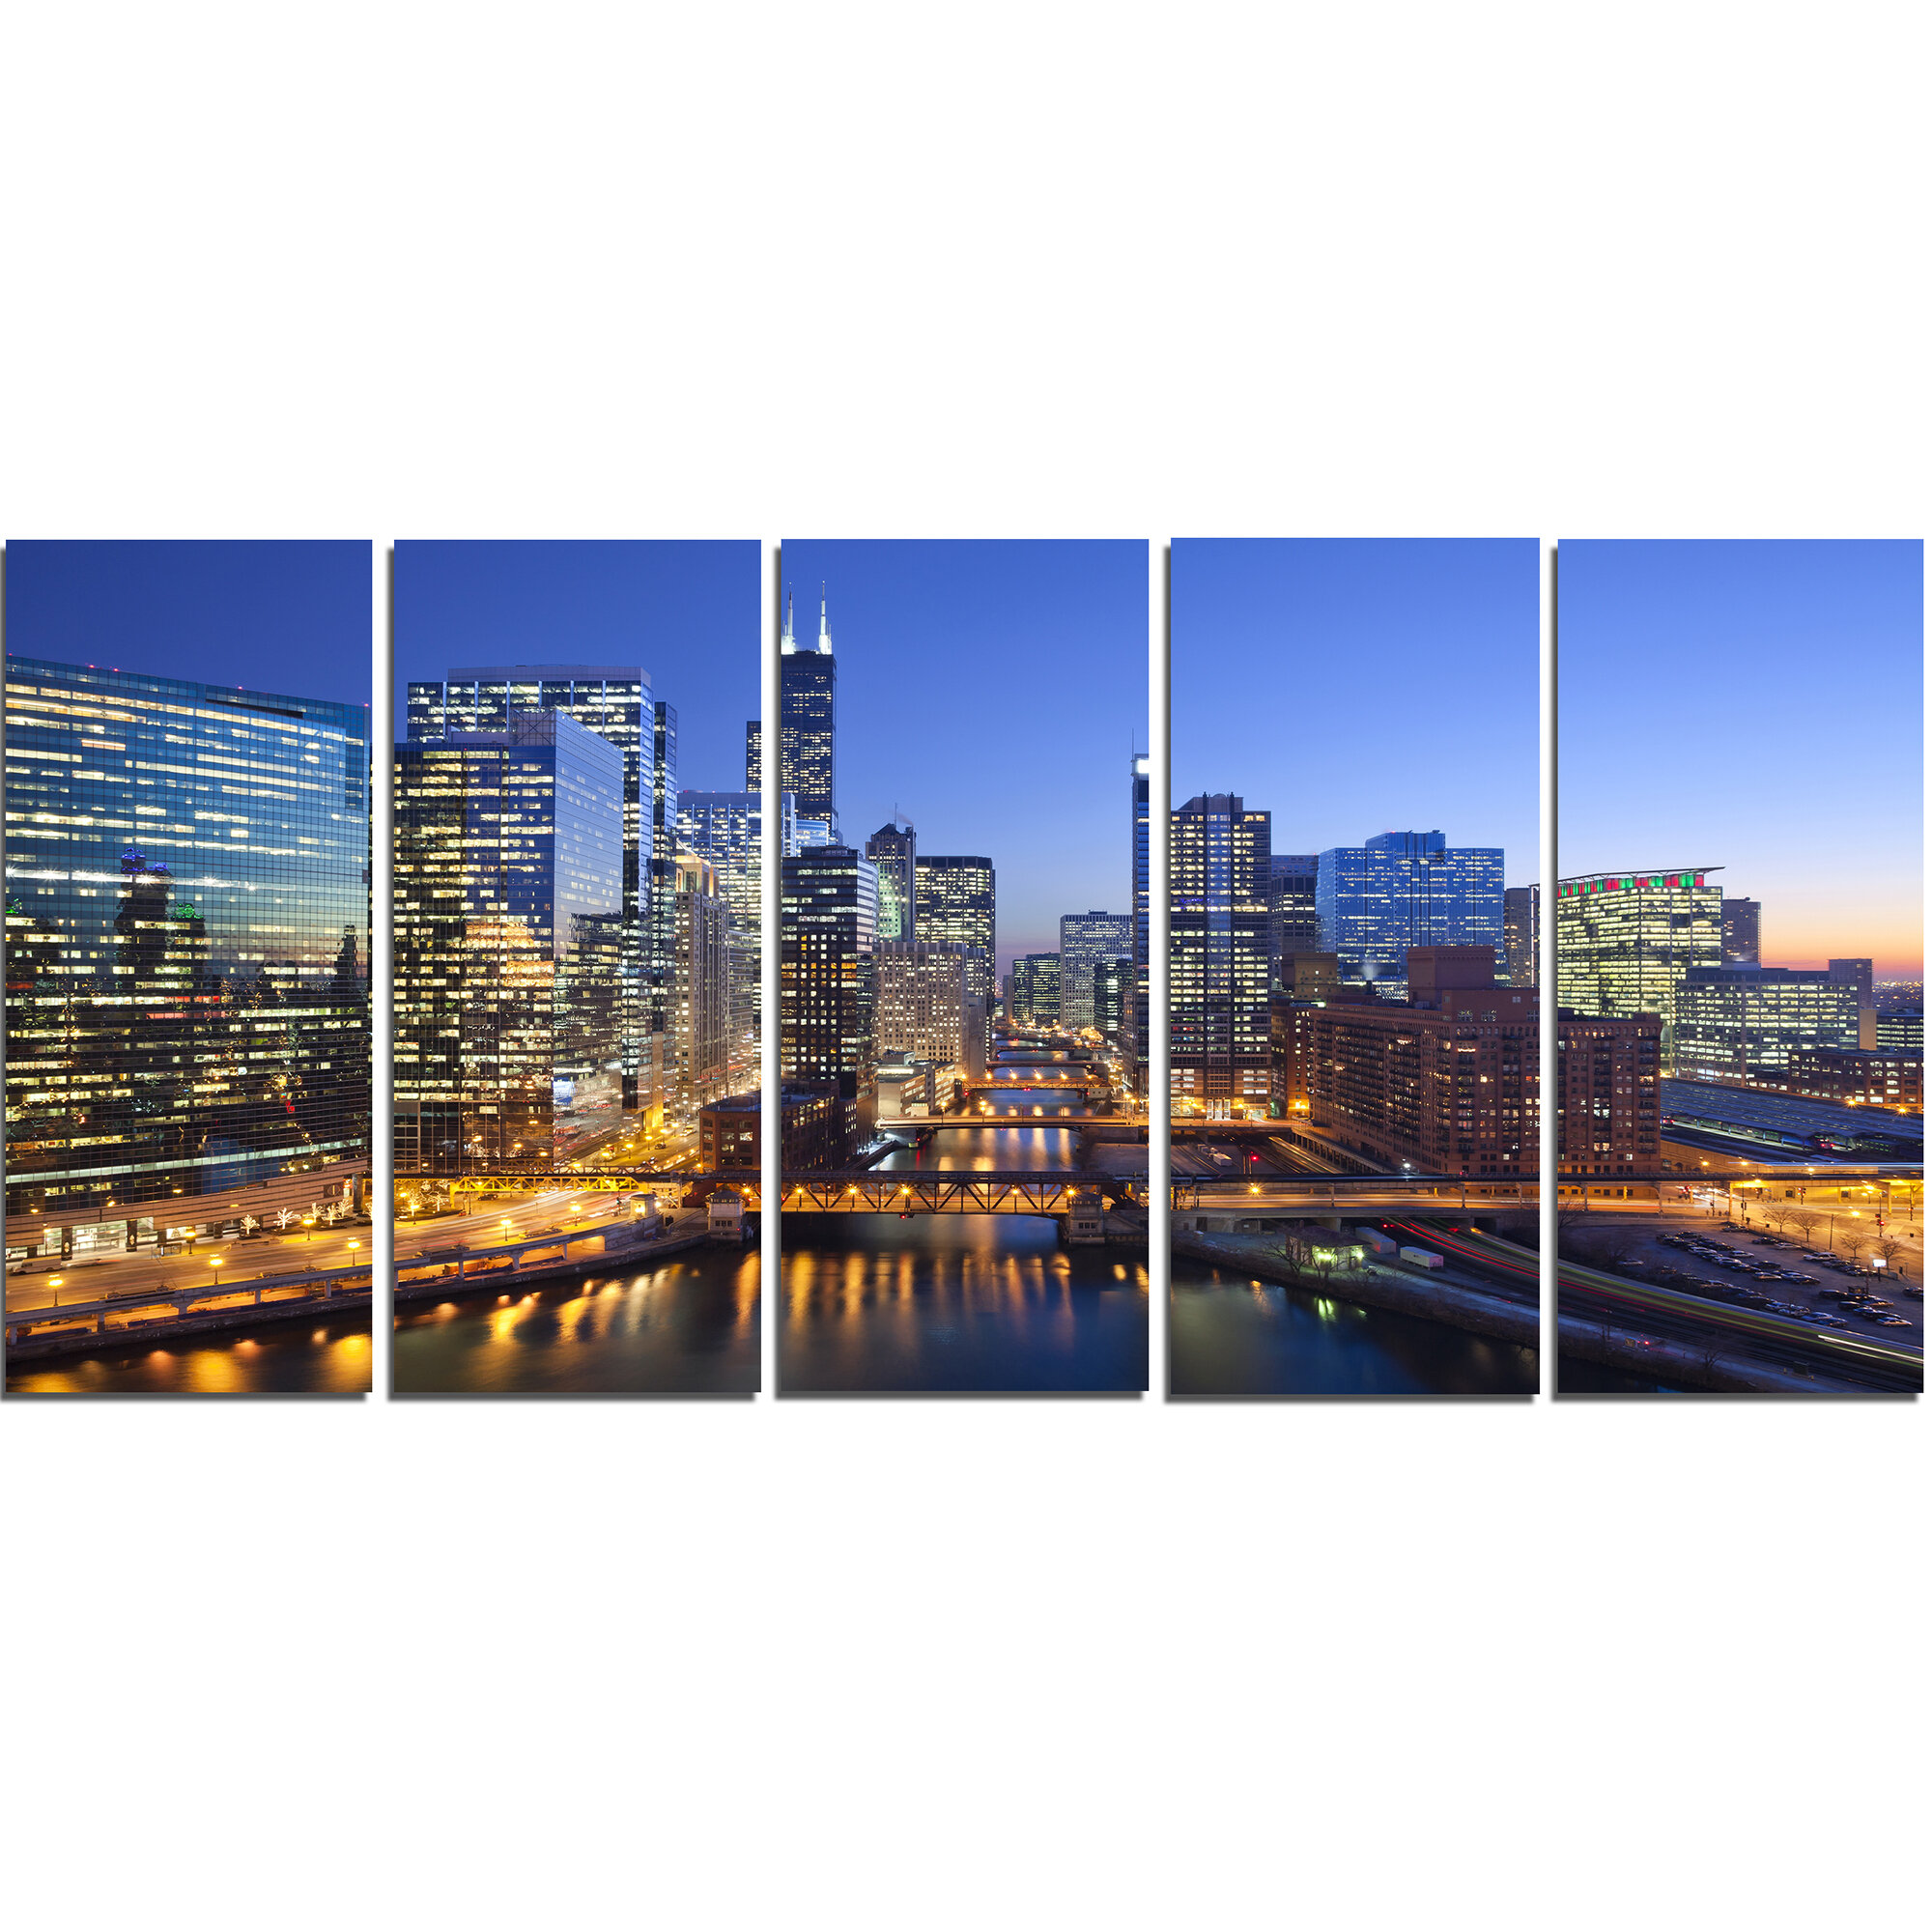 Designart Chicago River With Bridges At Sunset 5 Piece Photographic Print On Wrapped Canvas Set Wayfair